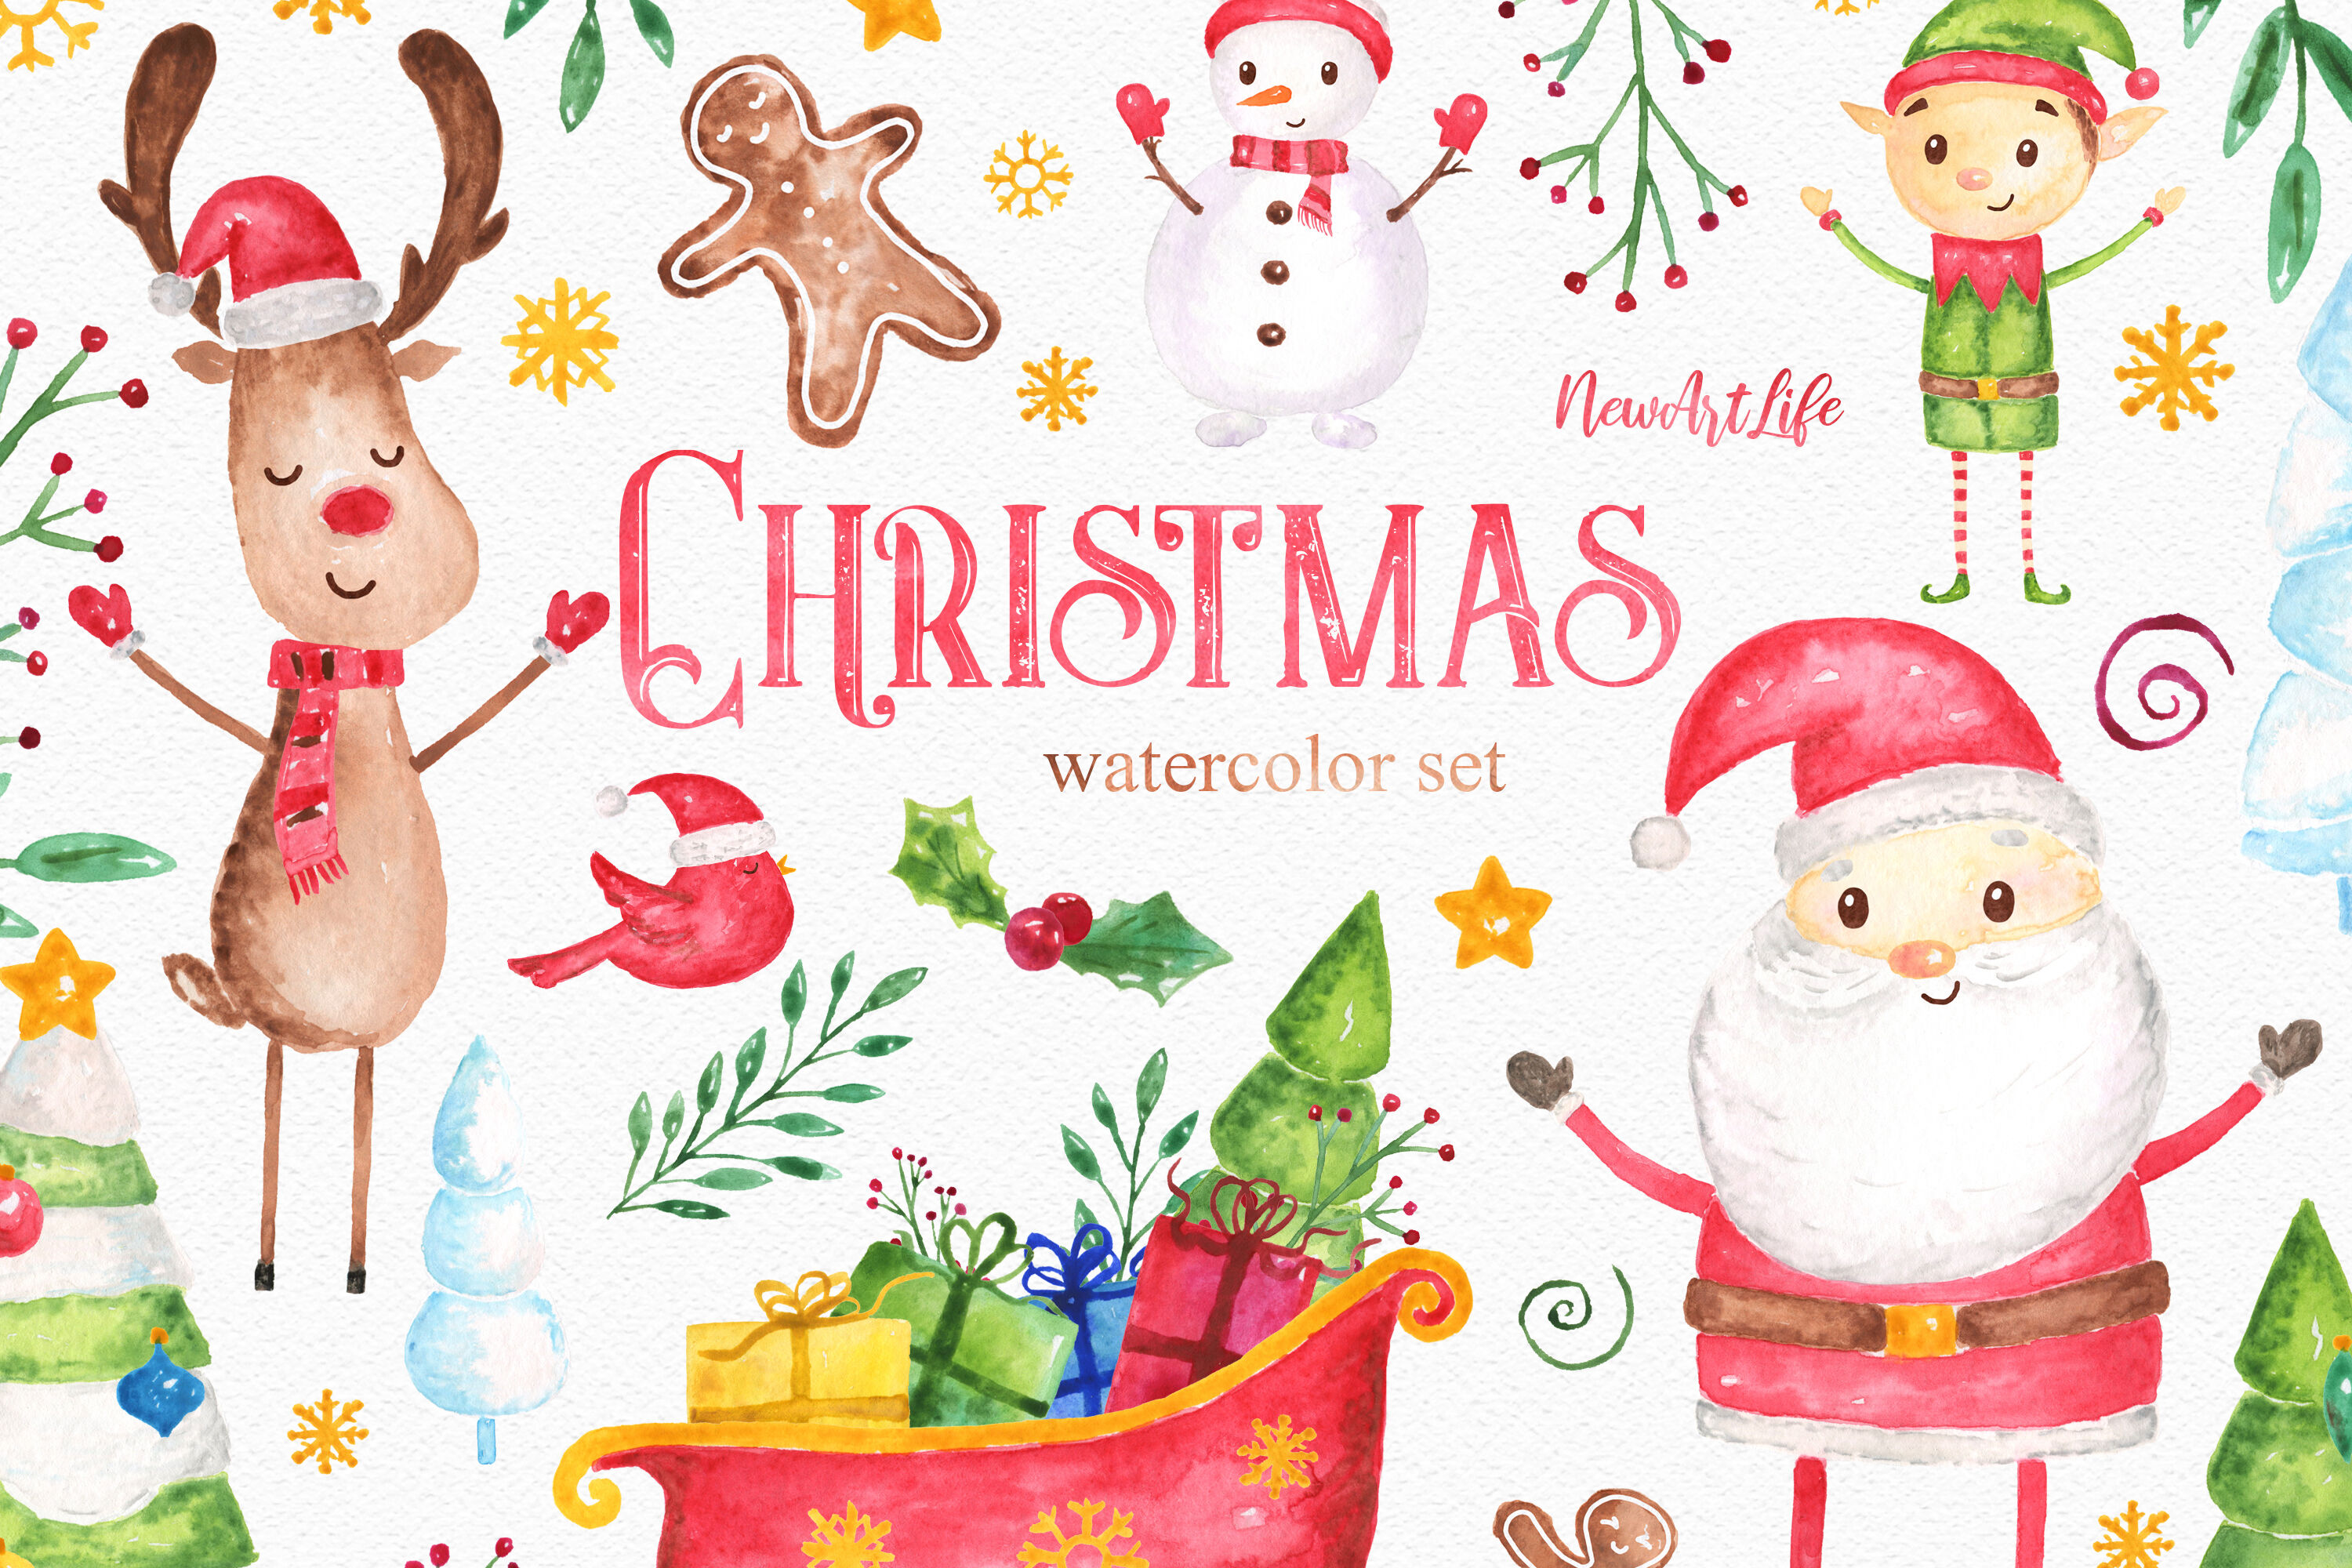 Christmas Watercolor Clipart Set By Newartlife Thehungryjpeg Com